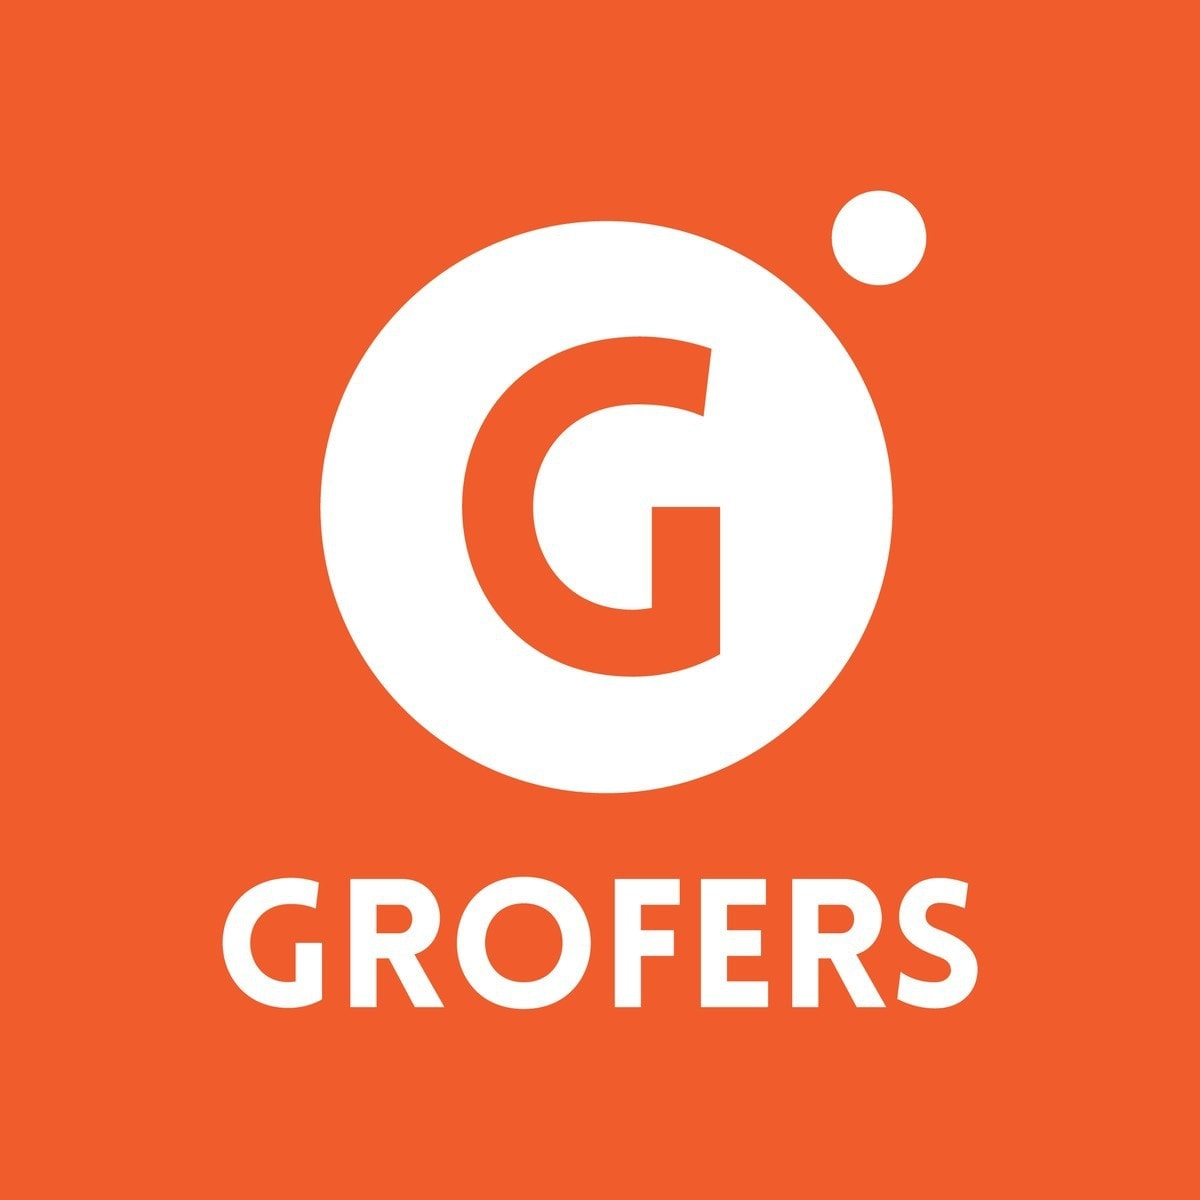 Marketing Mix Of Grofers